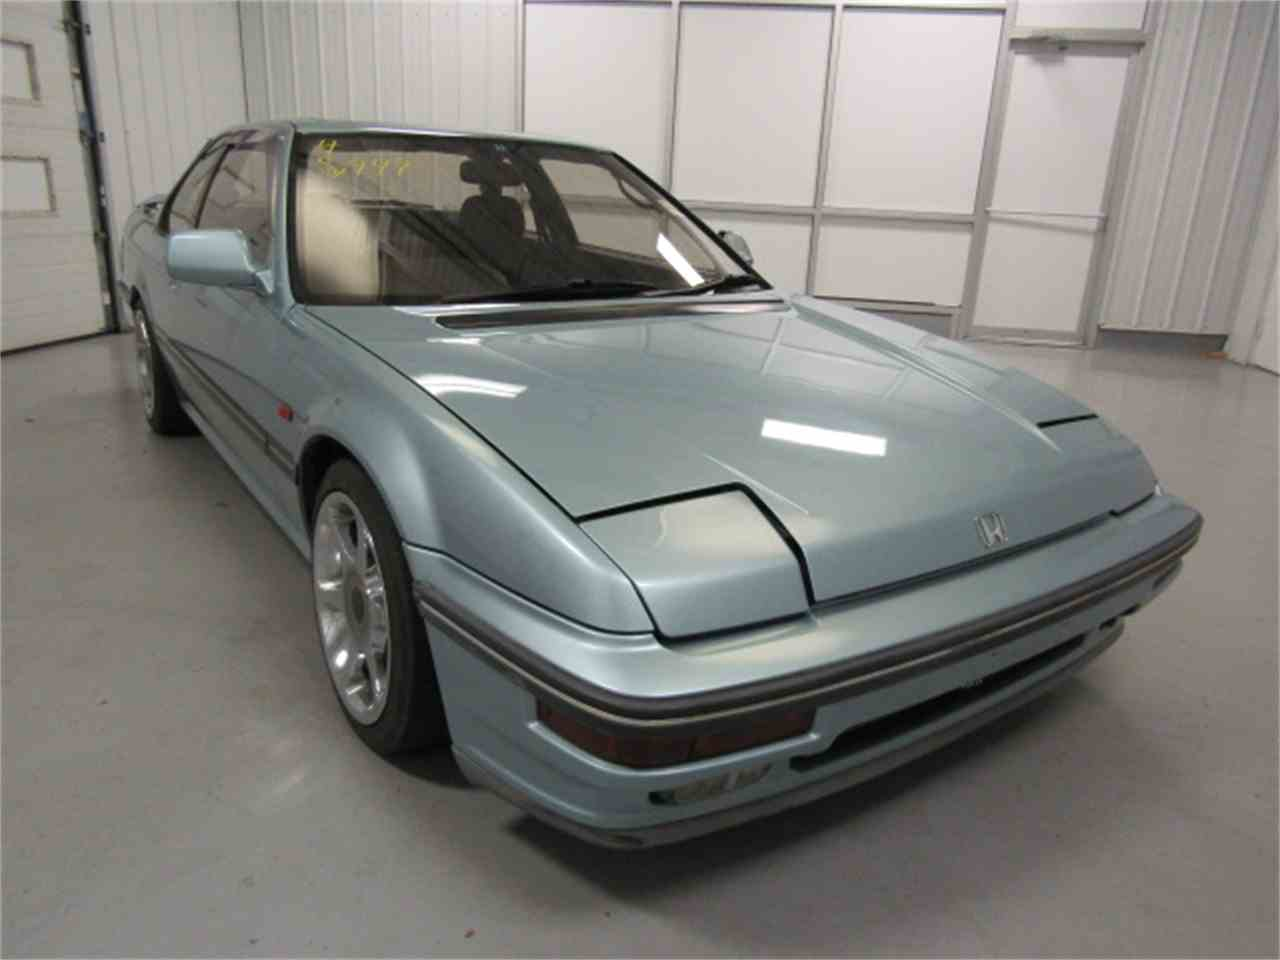 Large Picture of '88 Prelude located in Virginia - $6,979.00 Offered by Duncan Imports & Classic Cars - JM30